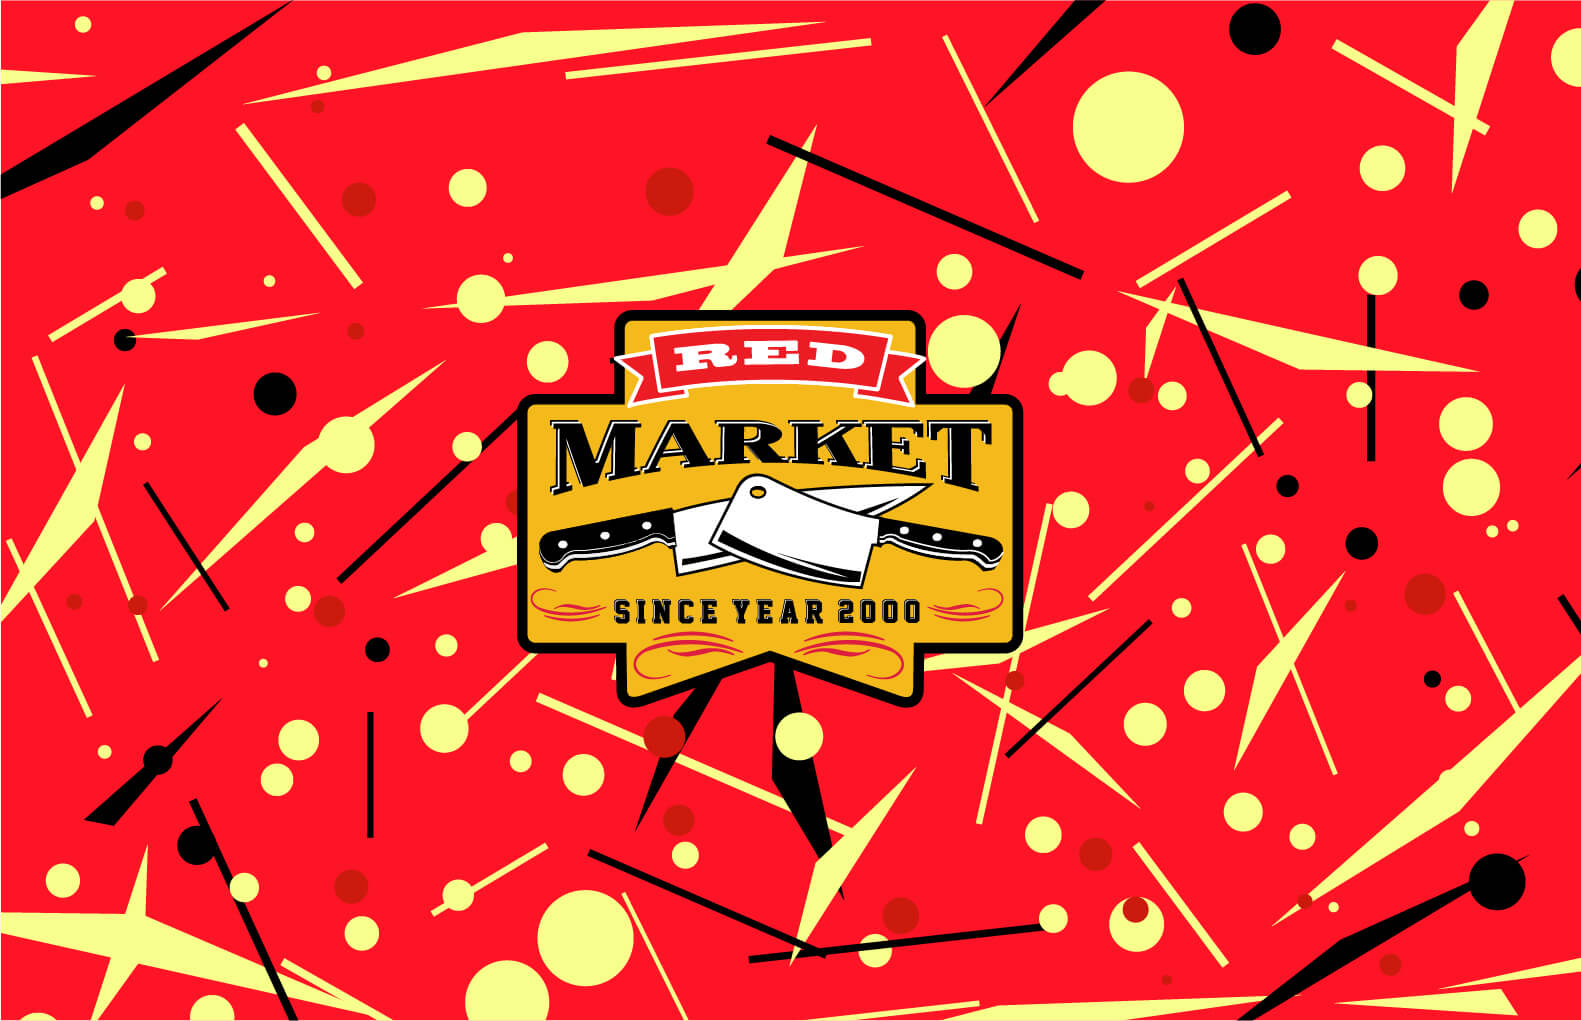 Red Market - Eng